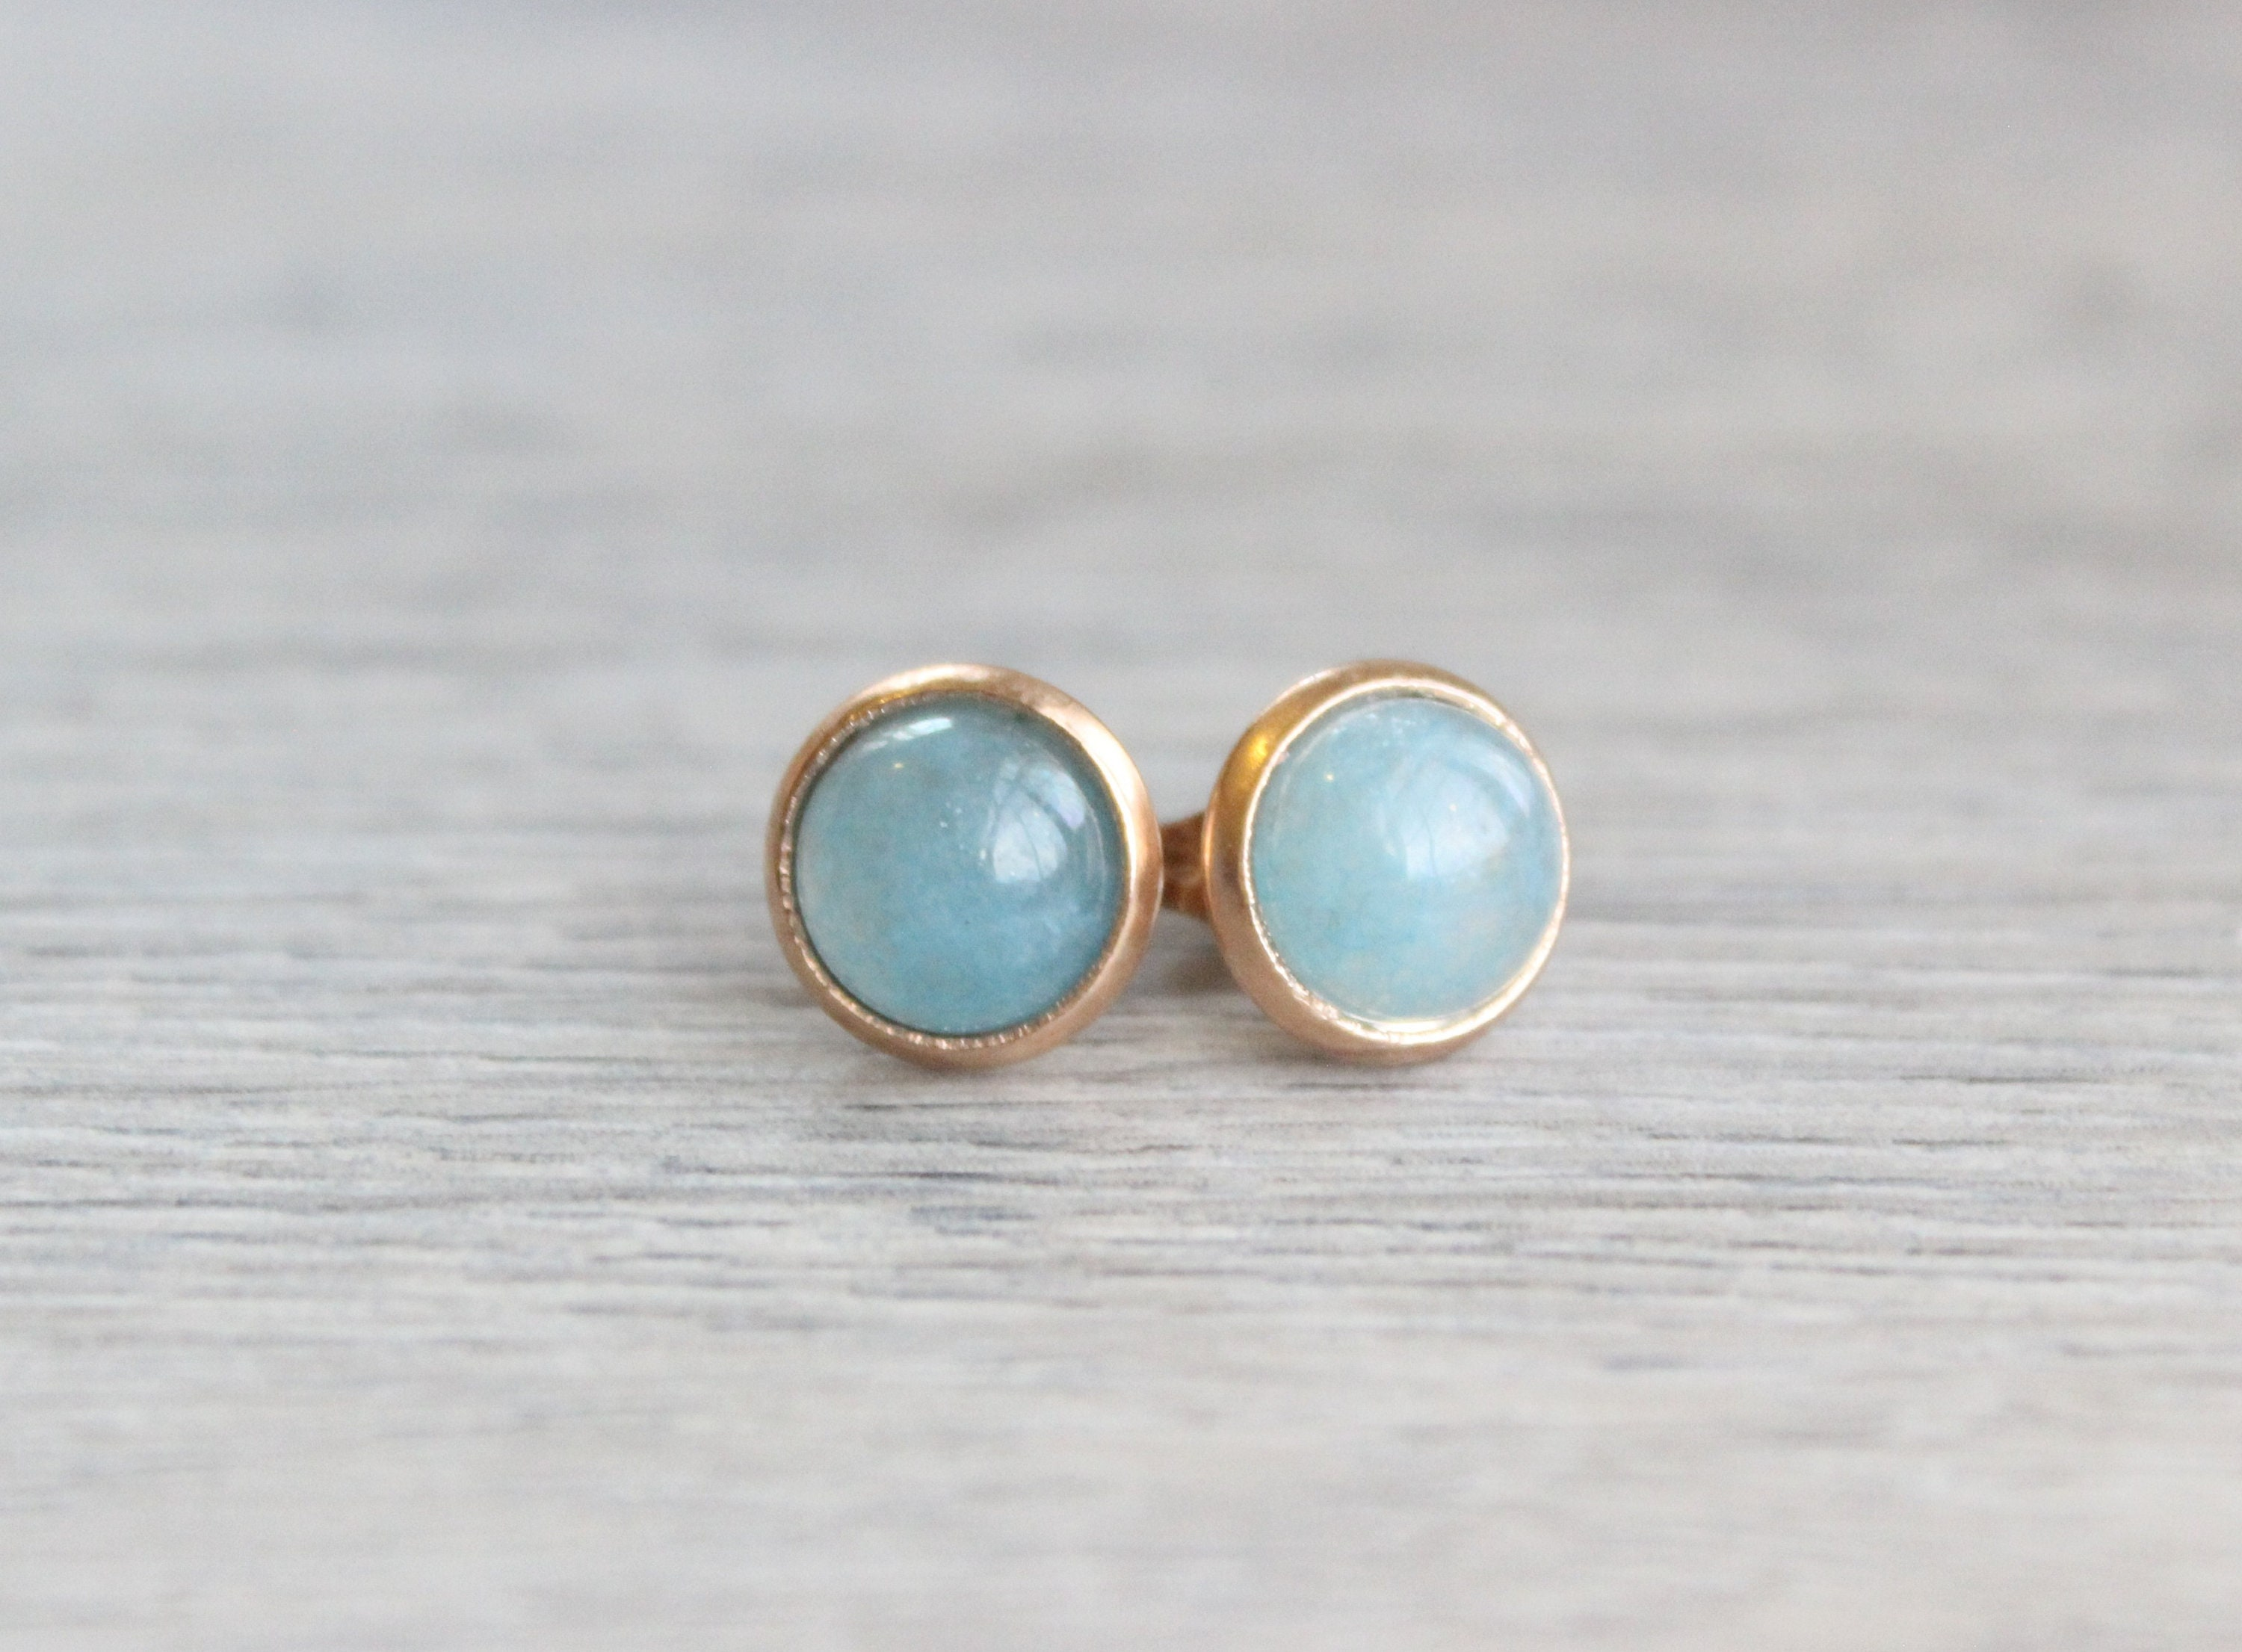 871883a31 Aquamarine Quartz Earrings // Rose Gold Aquamarine Stud Earrings ...